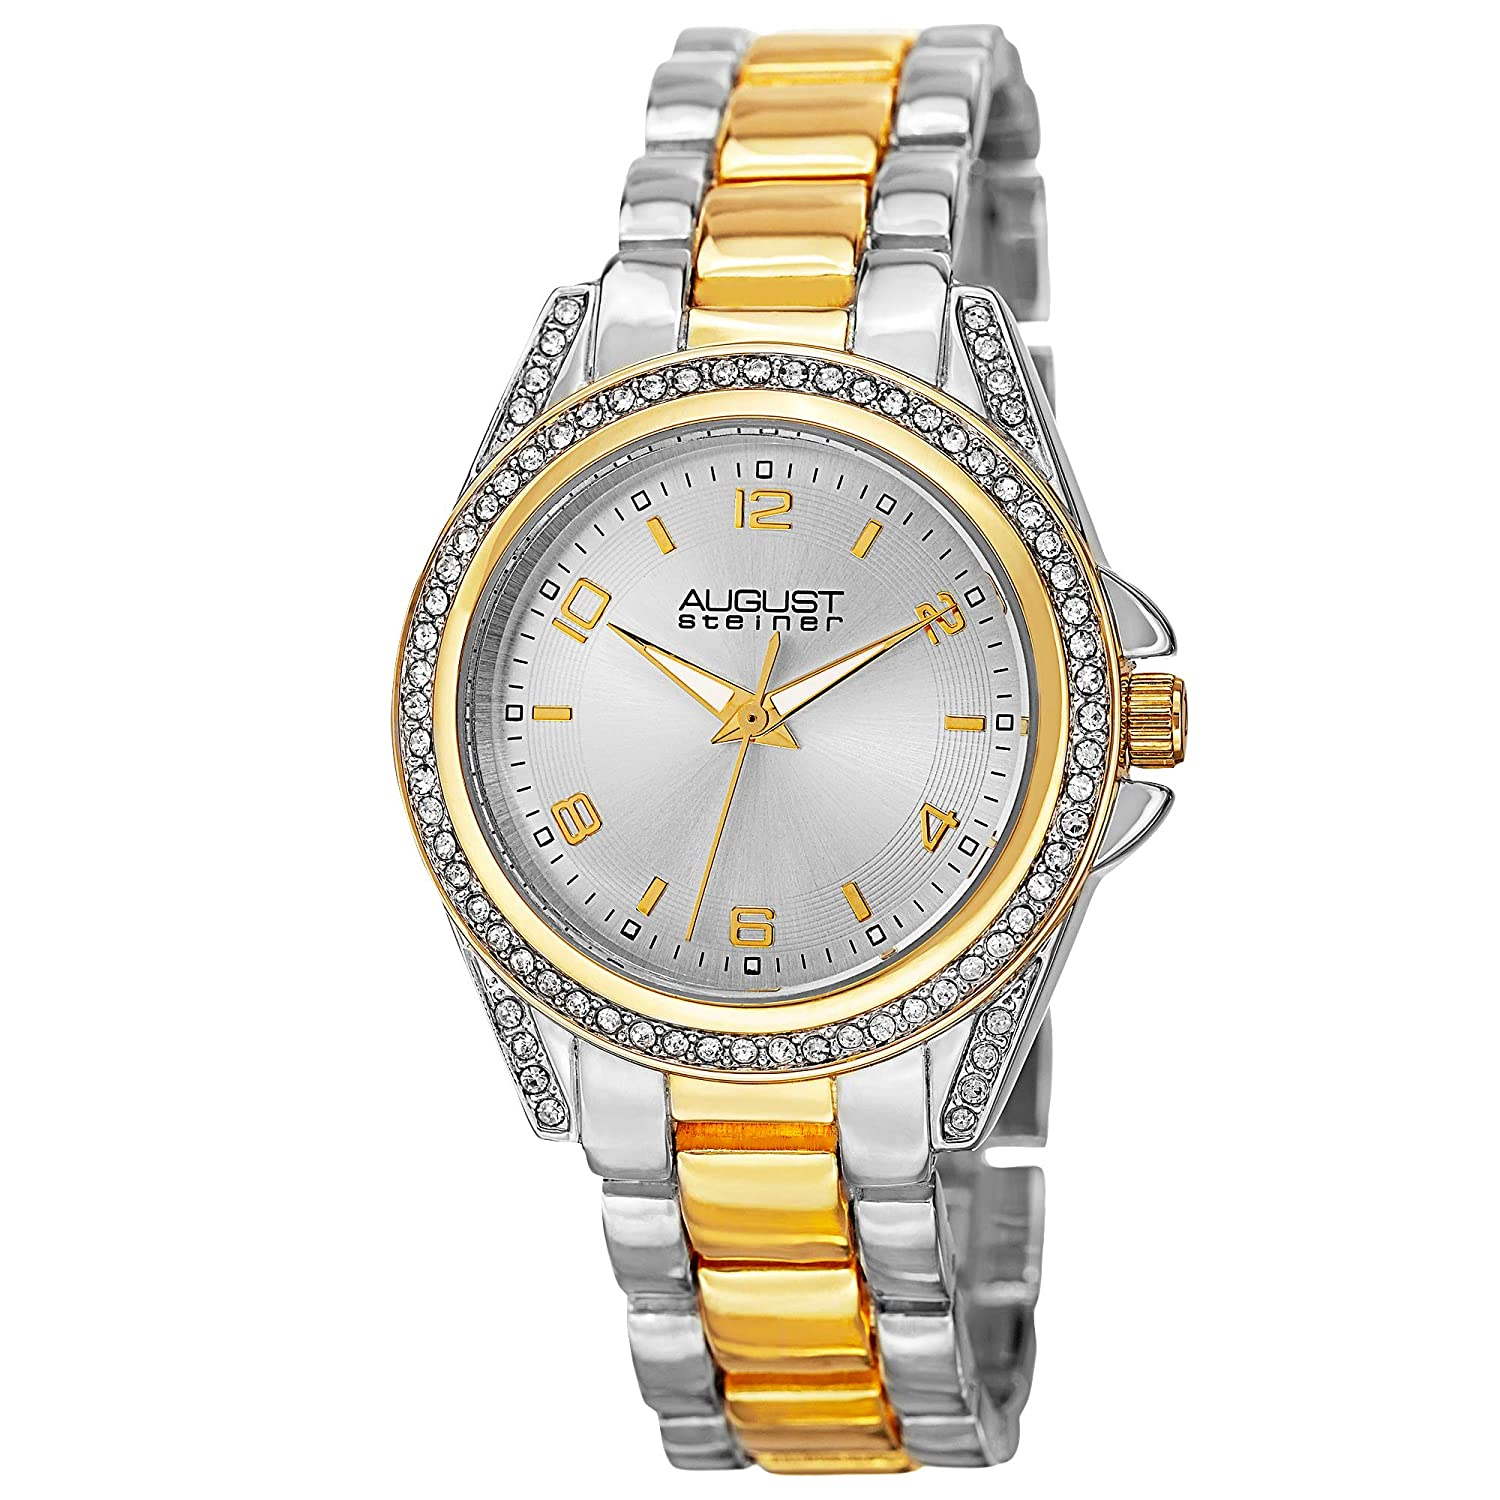 August Steiner Women s Crystal Accented Watch – Genuine Crystals On Bezel and Lugs, Japanese Quartz Movement On Stainless Steel Bracelet – AS8149